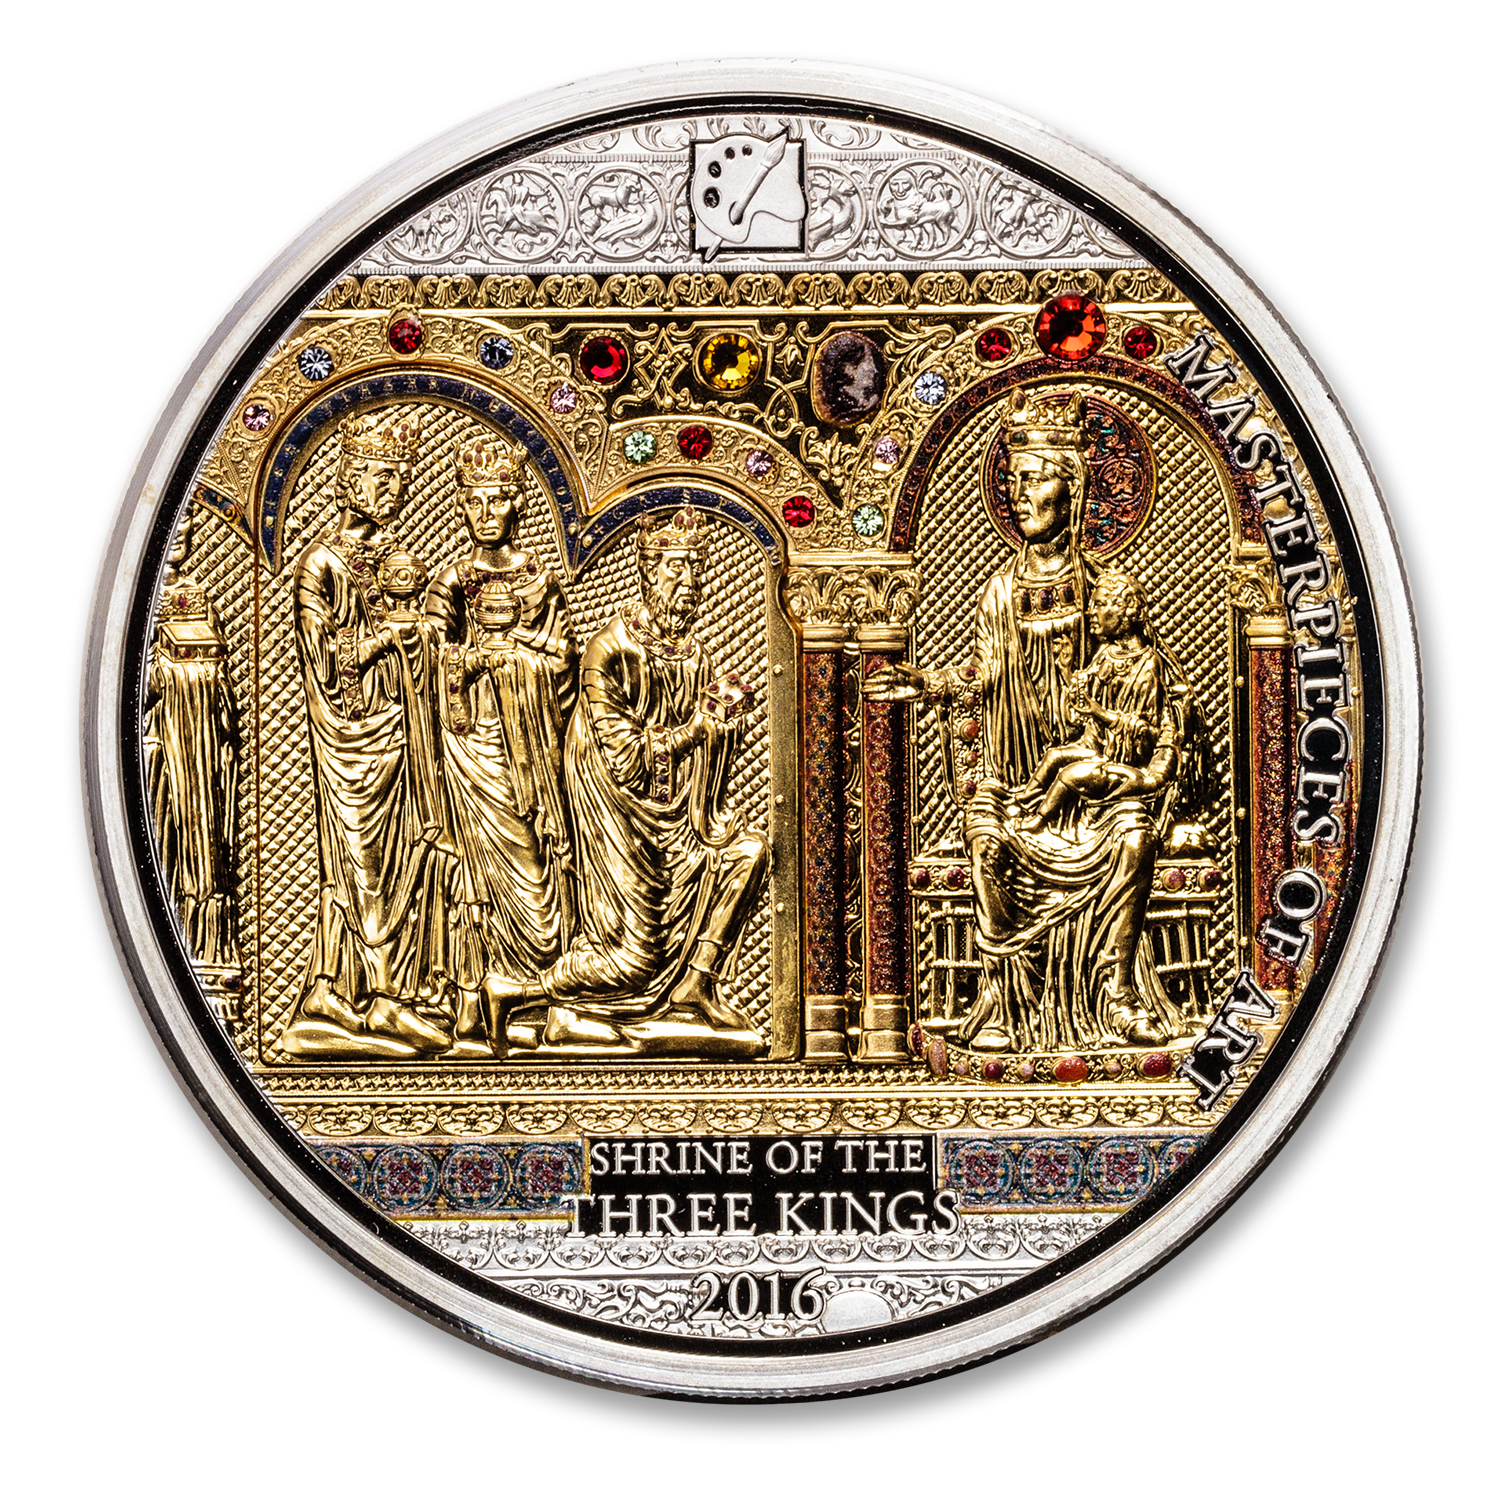 2016 Cook Islands Gold/Silver Shrine of the Three Kings Proof